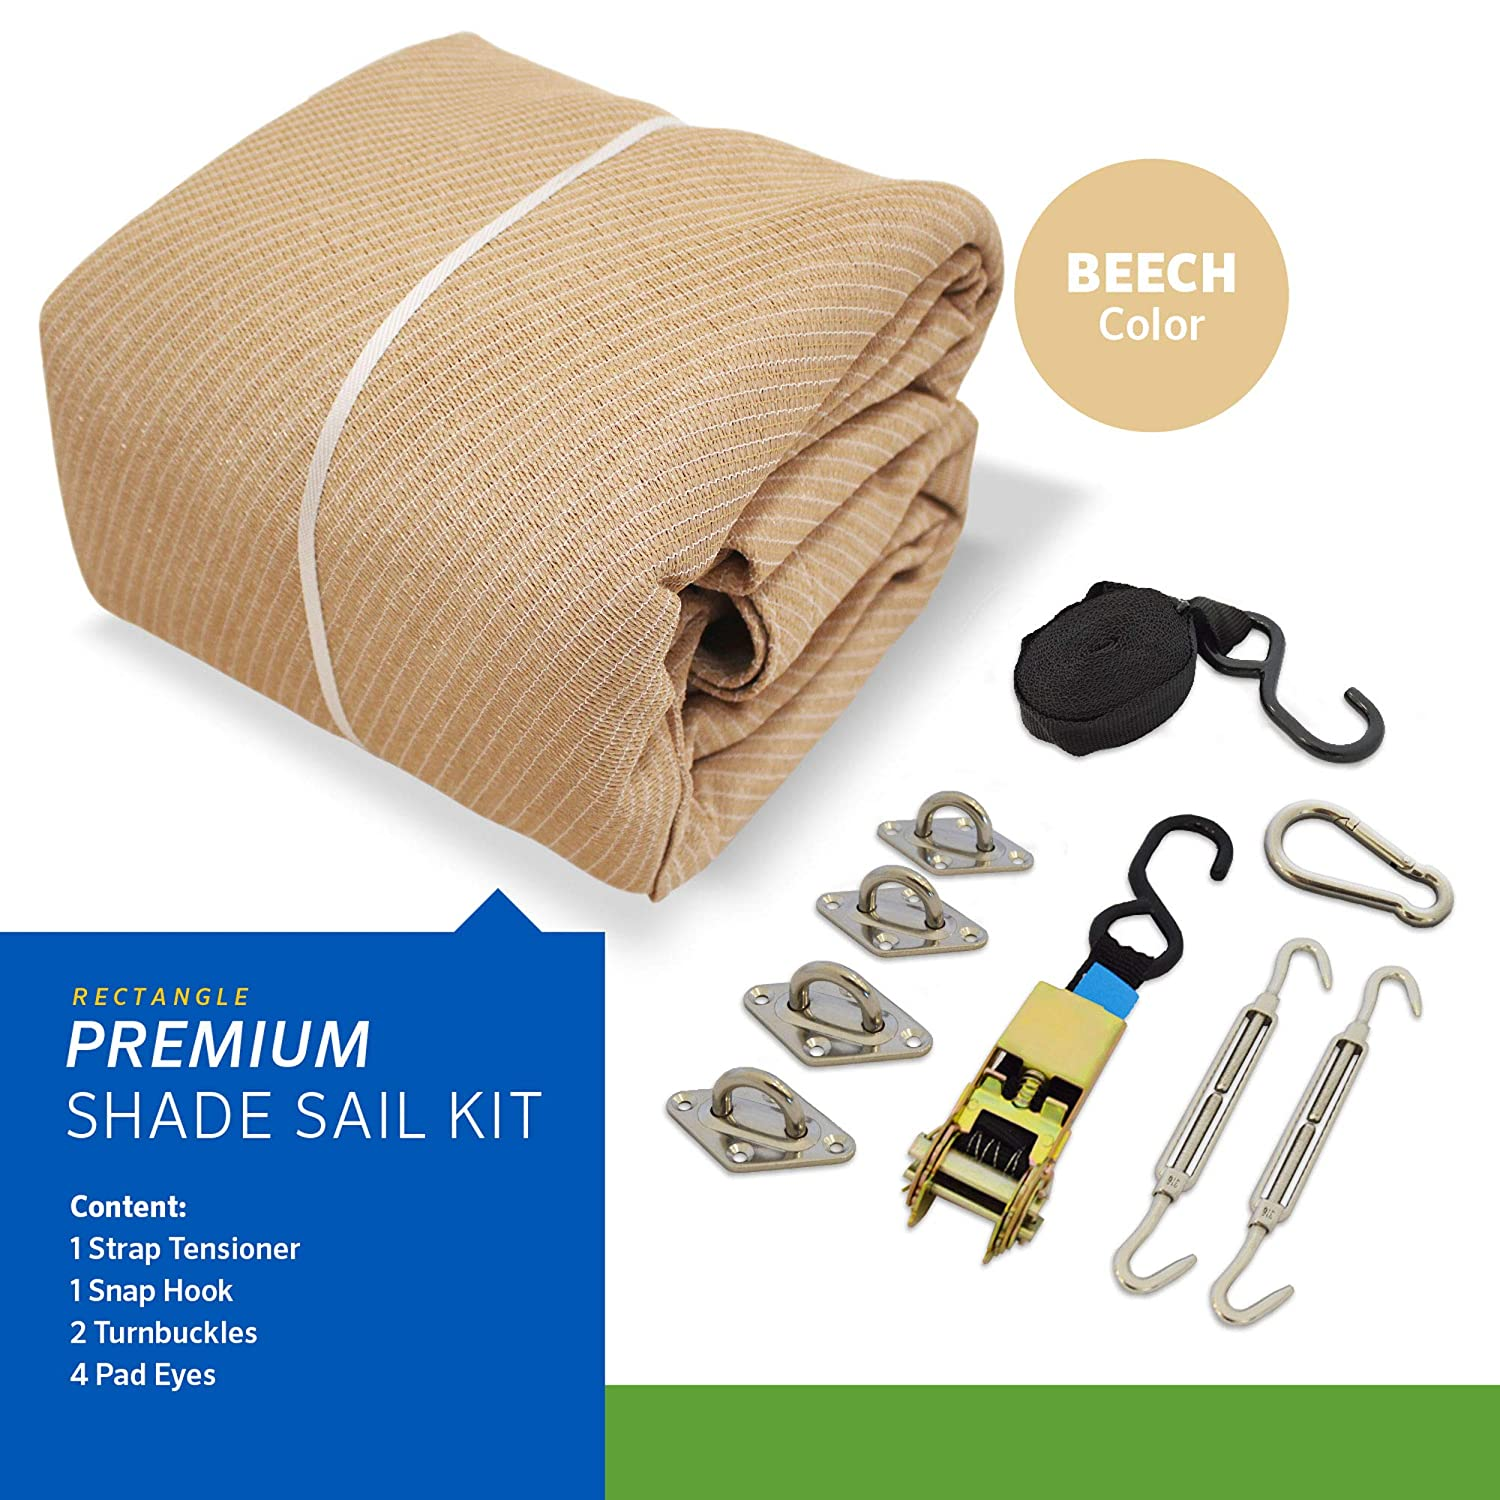 Coolaroo 458249 Premium Shade Sail Kit, 16 5 x9 11 Rectangle , Beech, 16 5 x 9 11